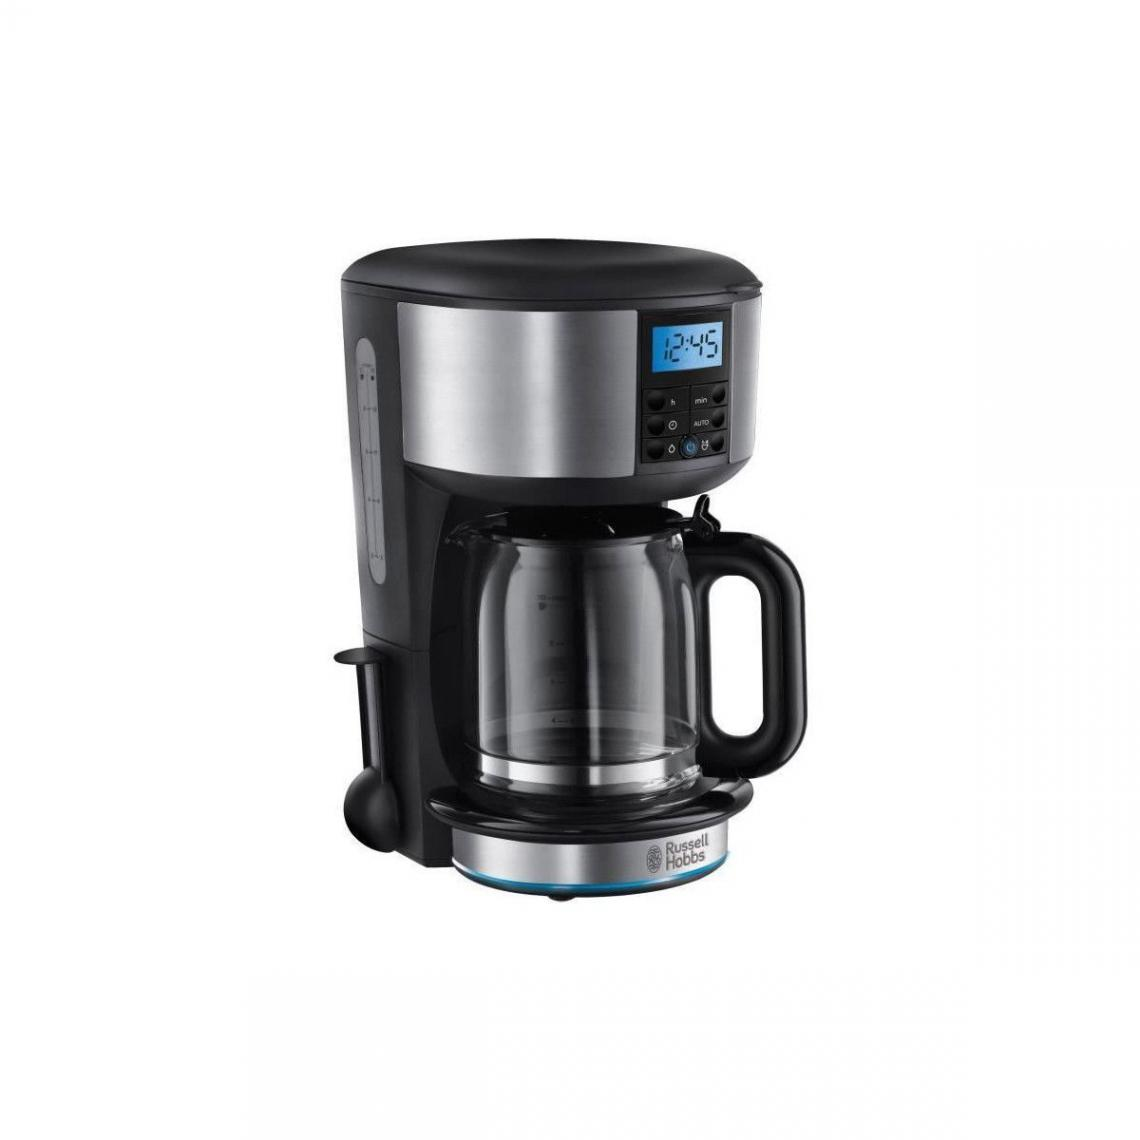 Russell Hobbs russell hobbs - cafetière programmable 15 tasses 1000w - 20680-56